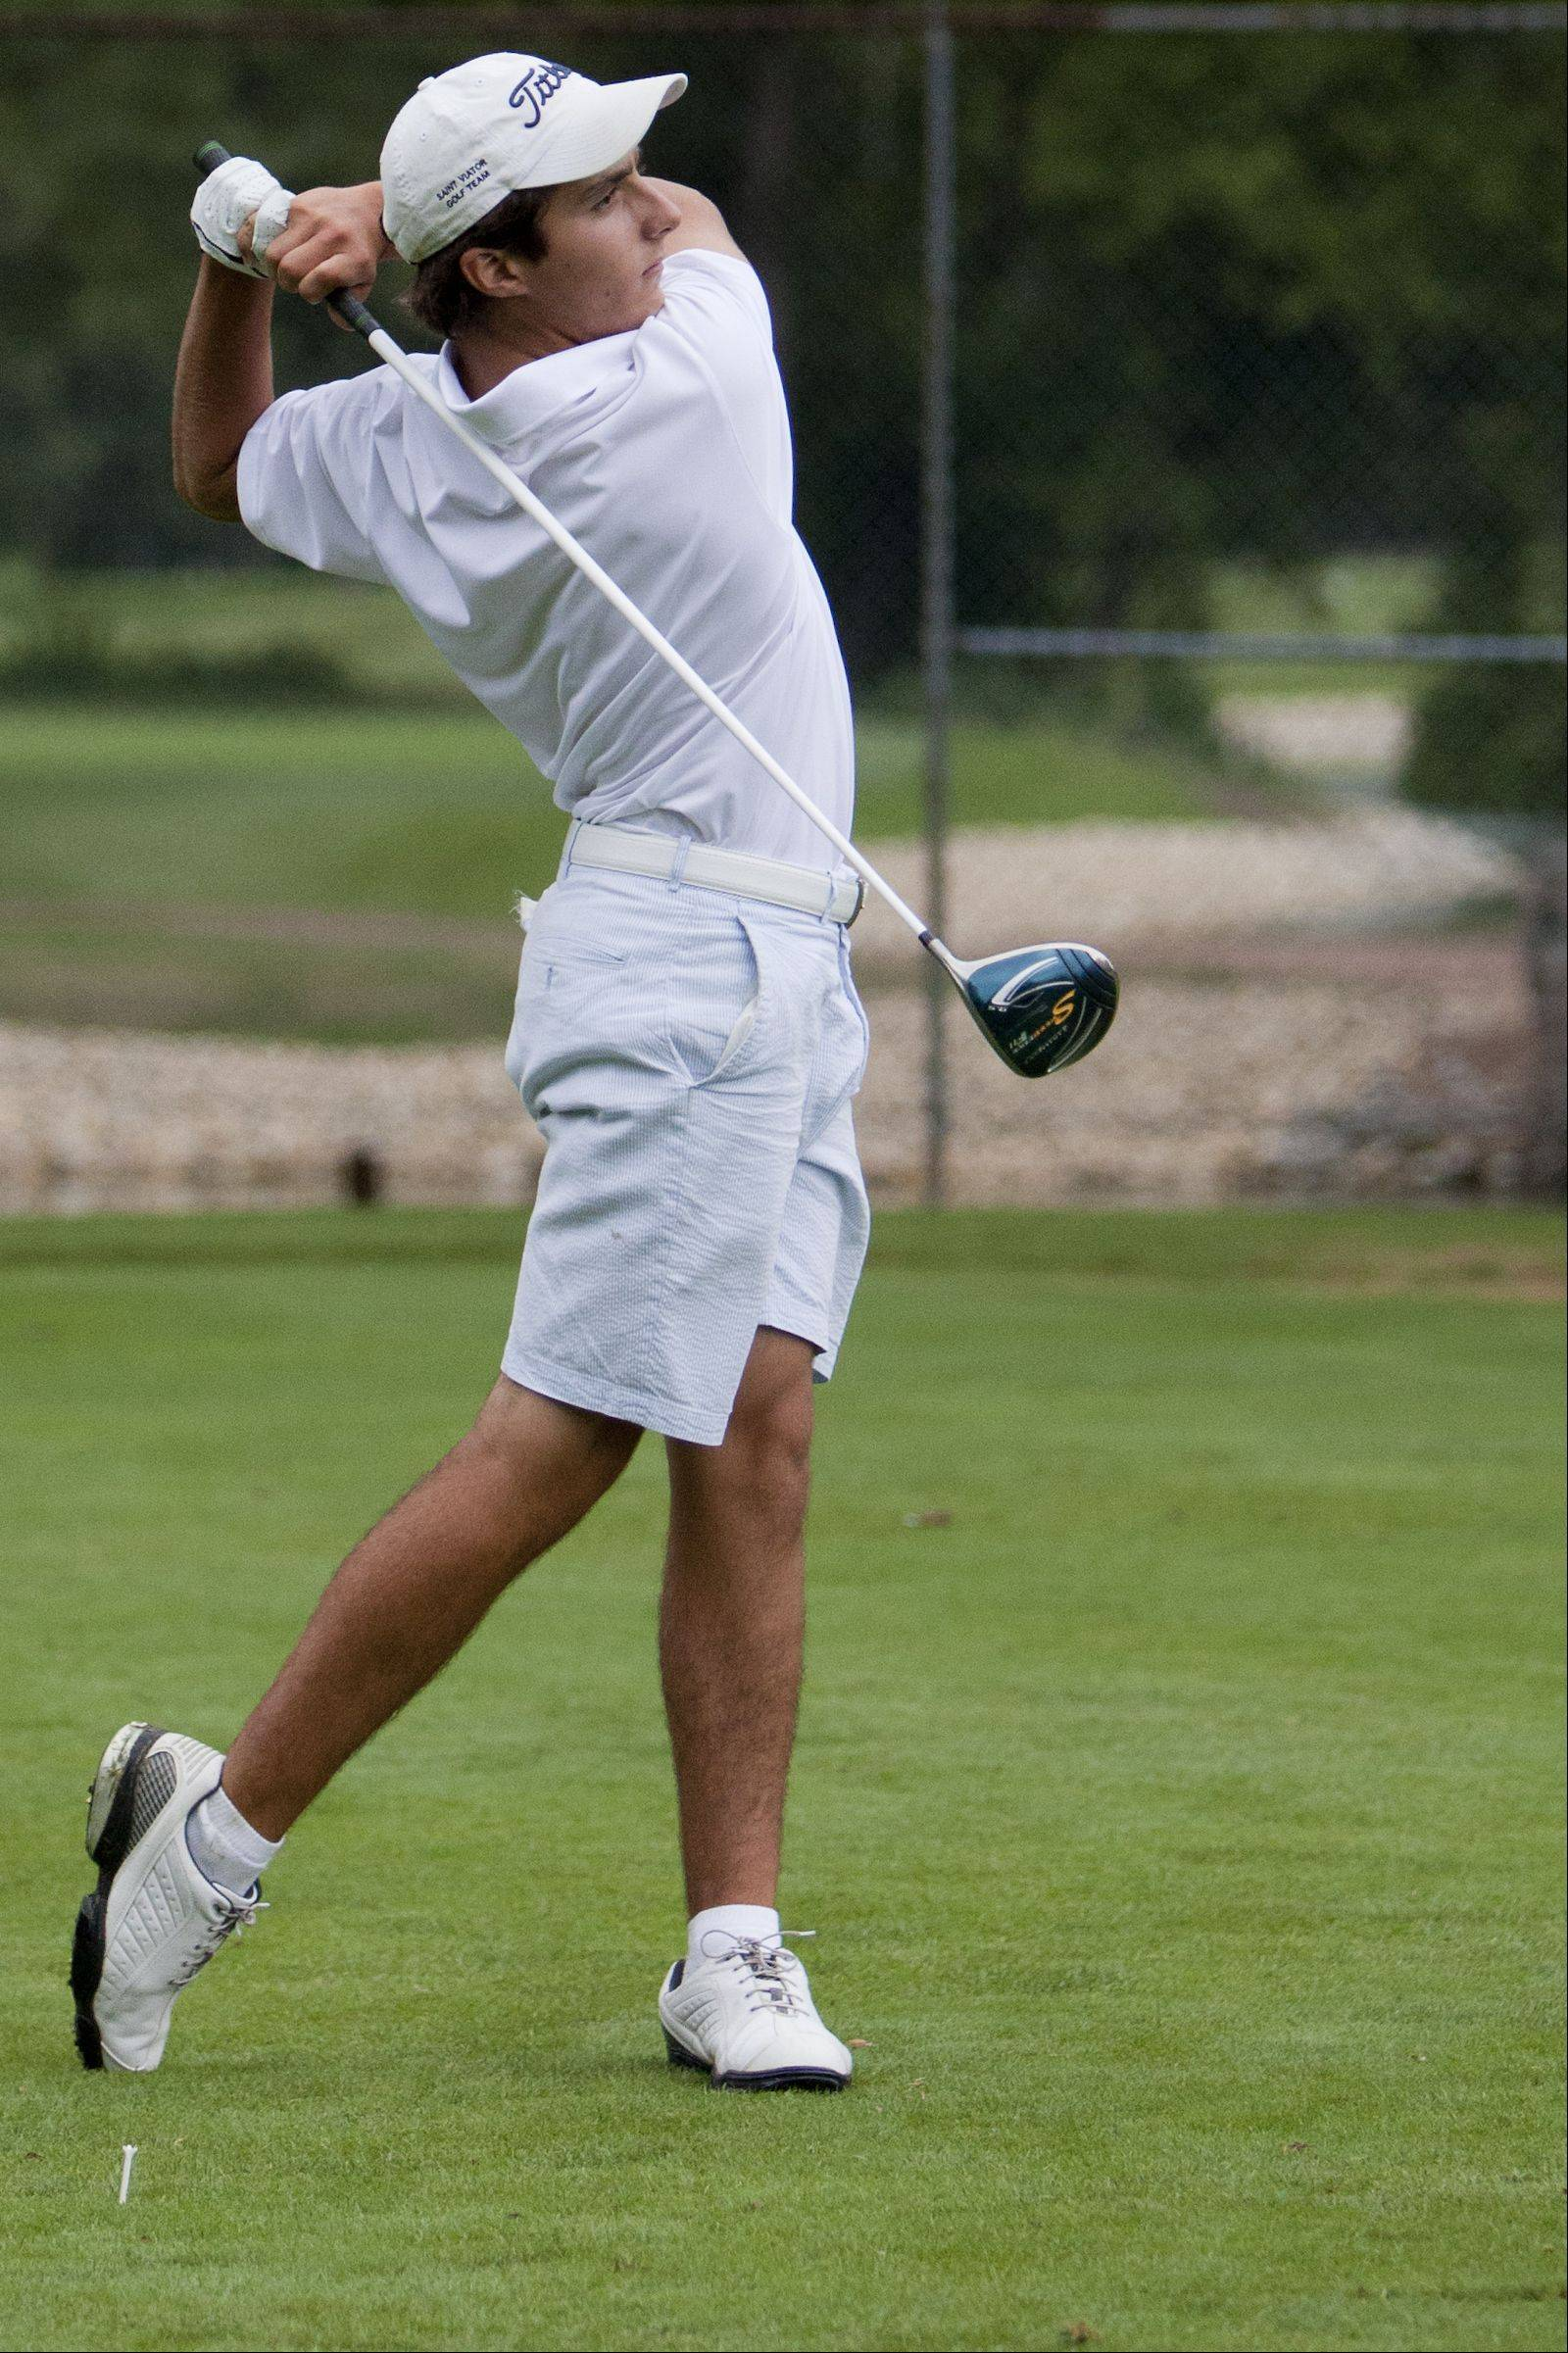 St. Viator junior Robert Renner tees off at Old Orchard Country Club in Mount Prospect during a practice session.